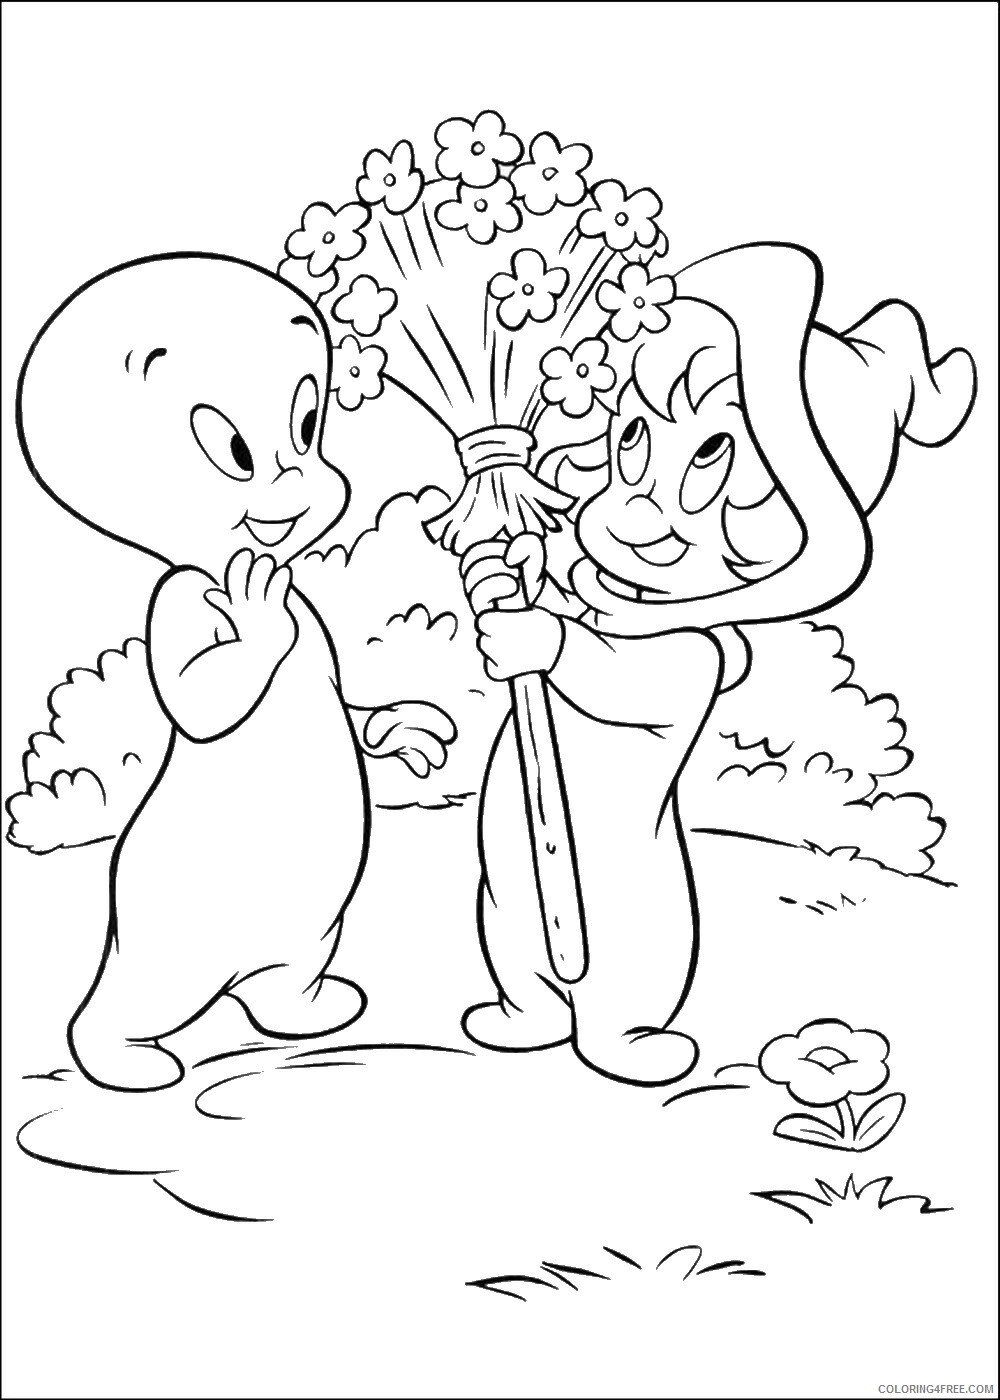 Casper Coloring Pages TV Film casper_cl_09 Printable 2020 02002 Coloring4free